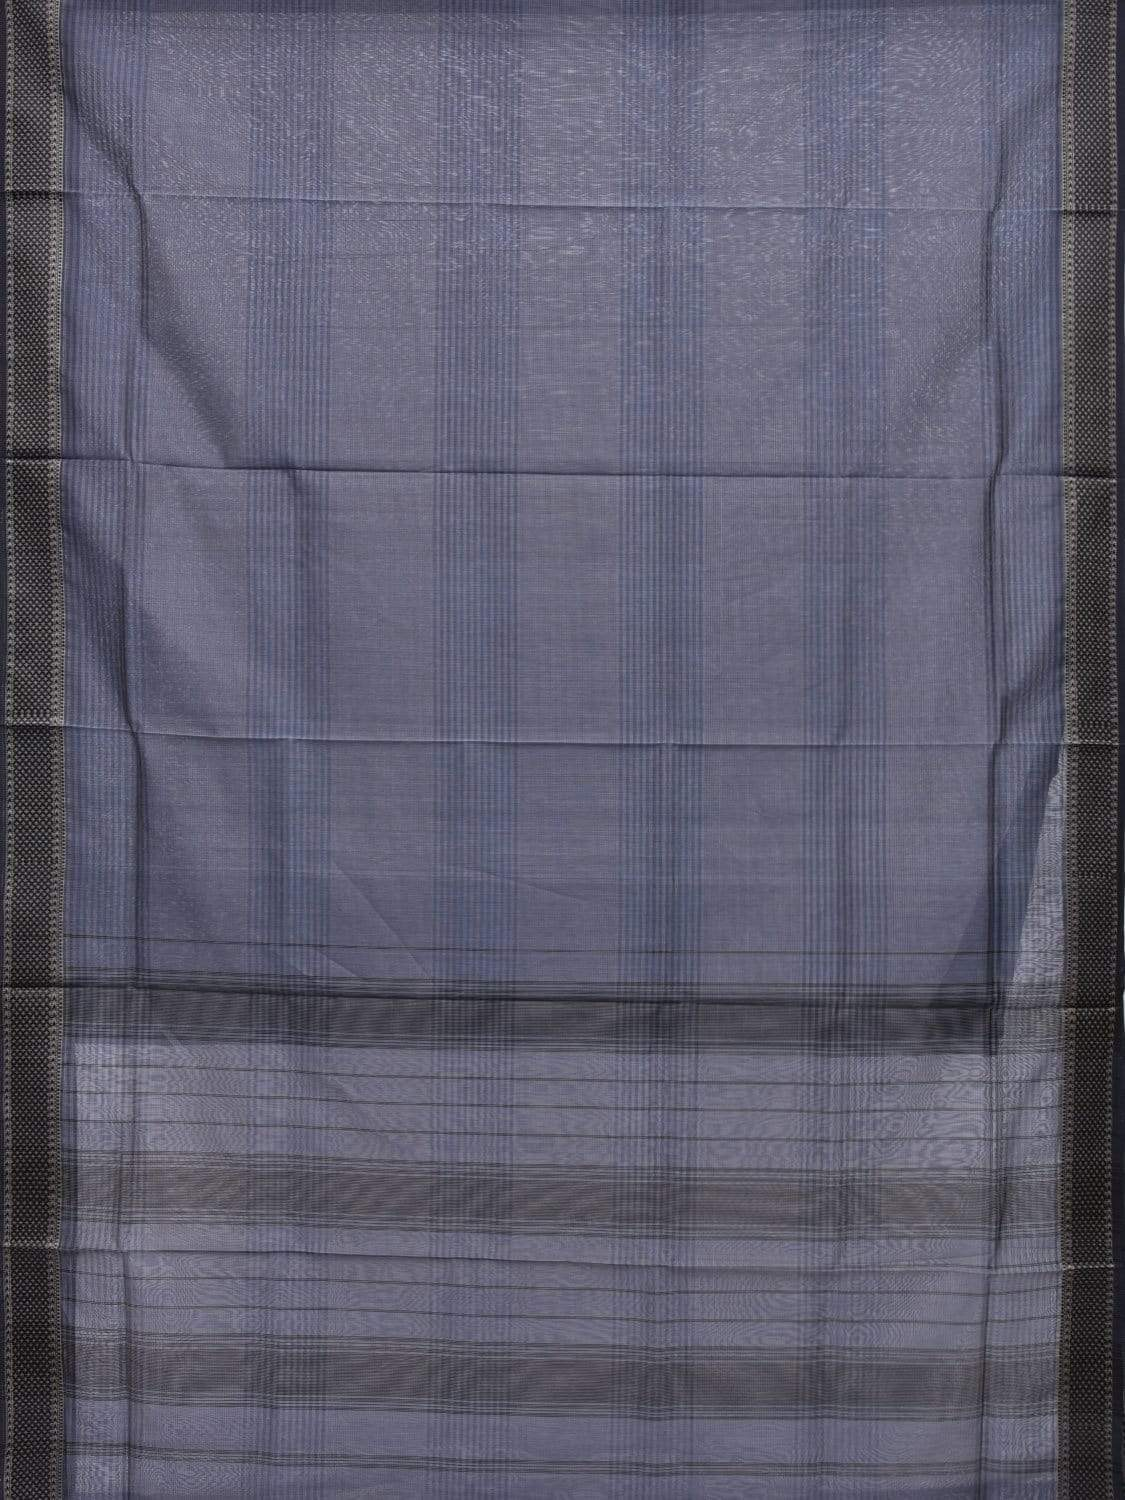 Dark Blue Maheshwari Cotton Silk Handloom Saree with Strips Design m0121